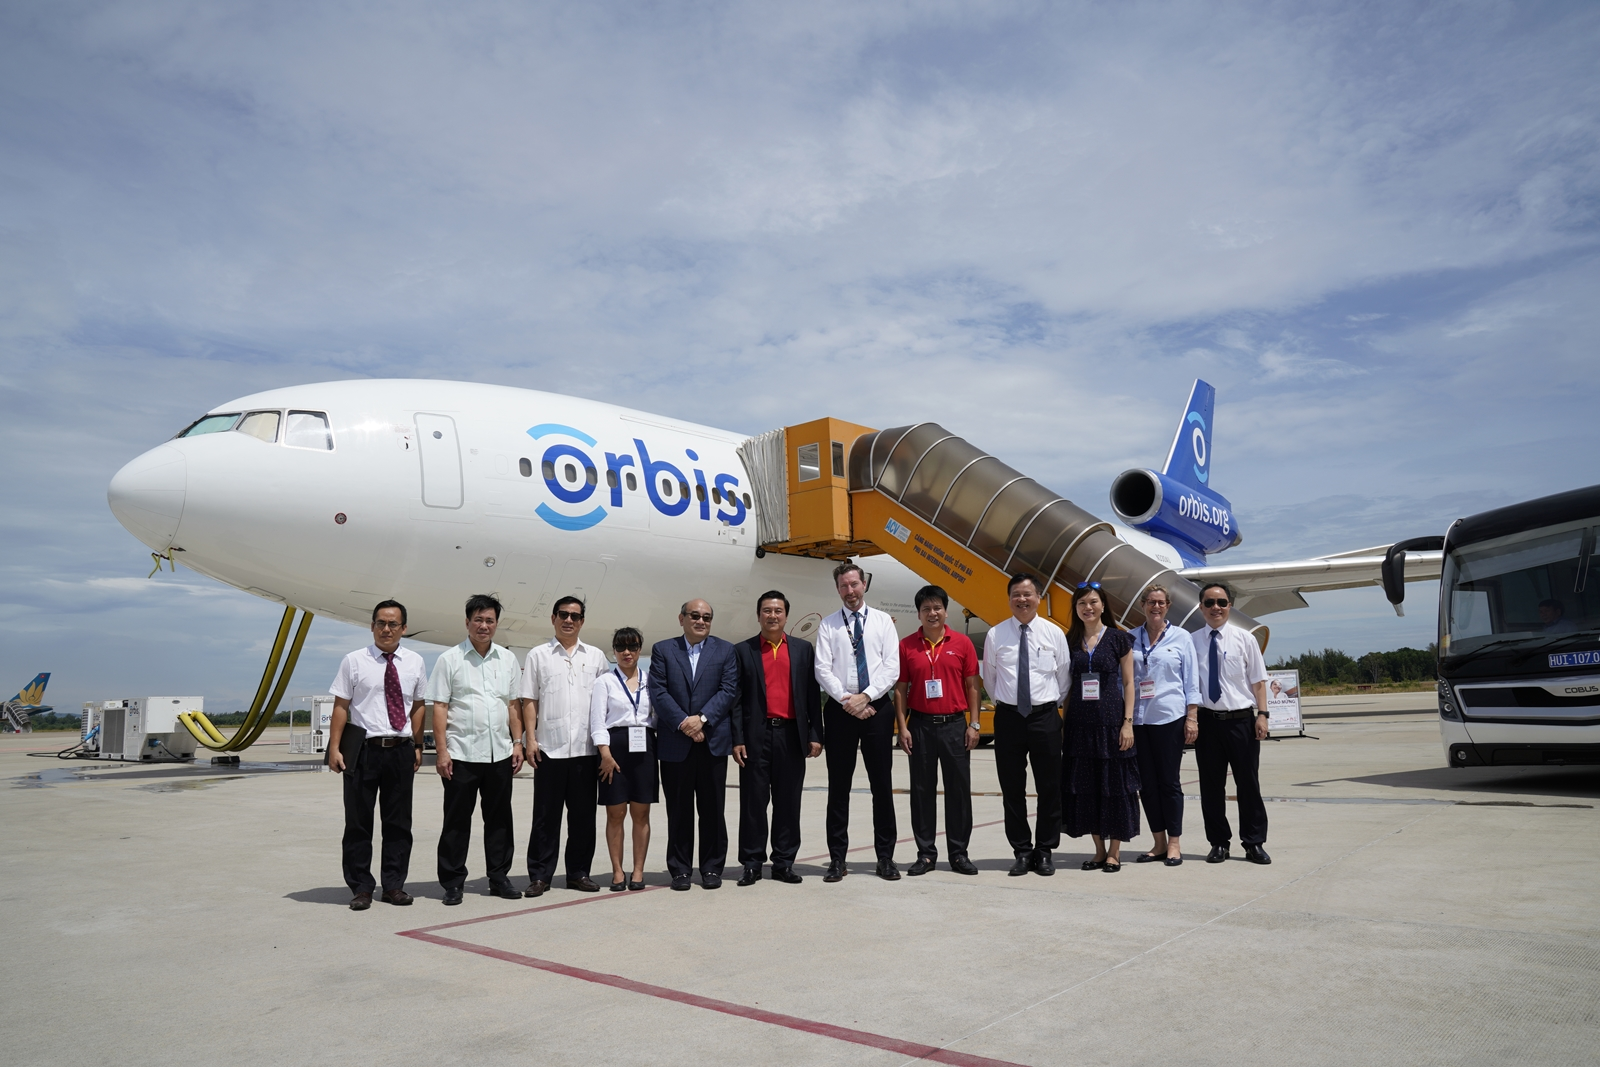 Vietjet signs MoU with Orbis to save light for Vietnamese